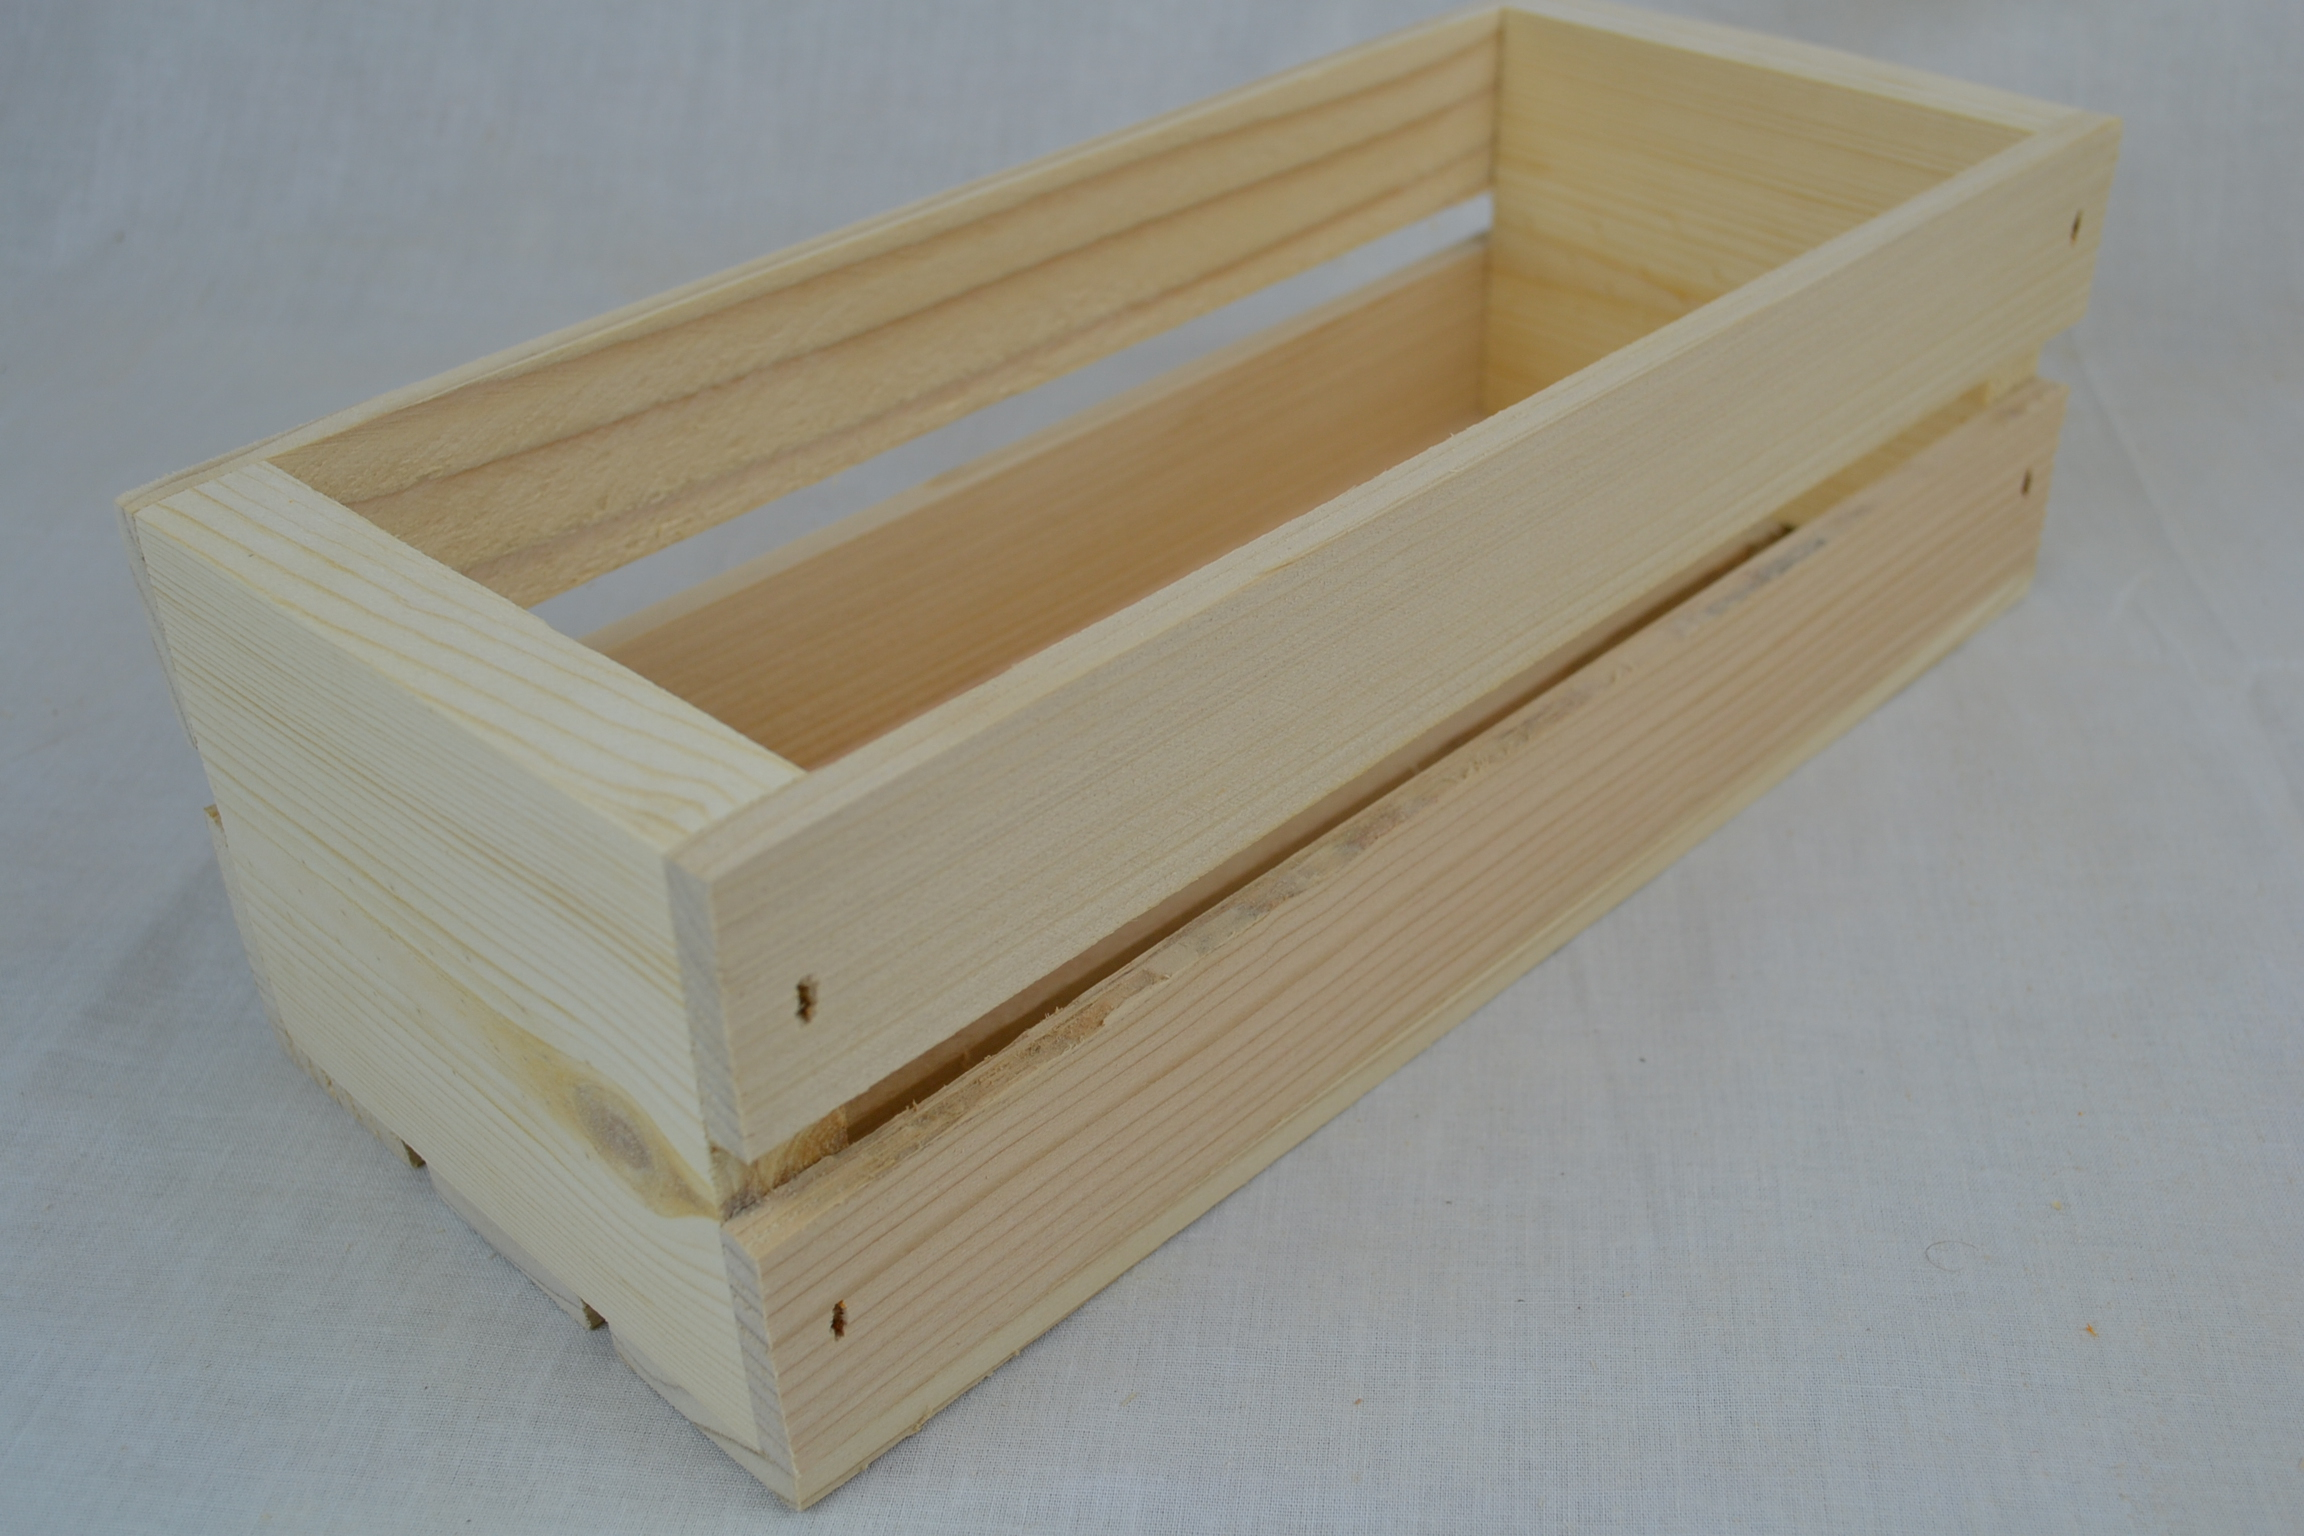 Old Fashioned Wooden Crates